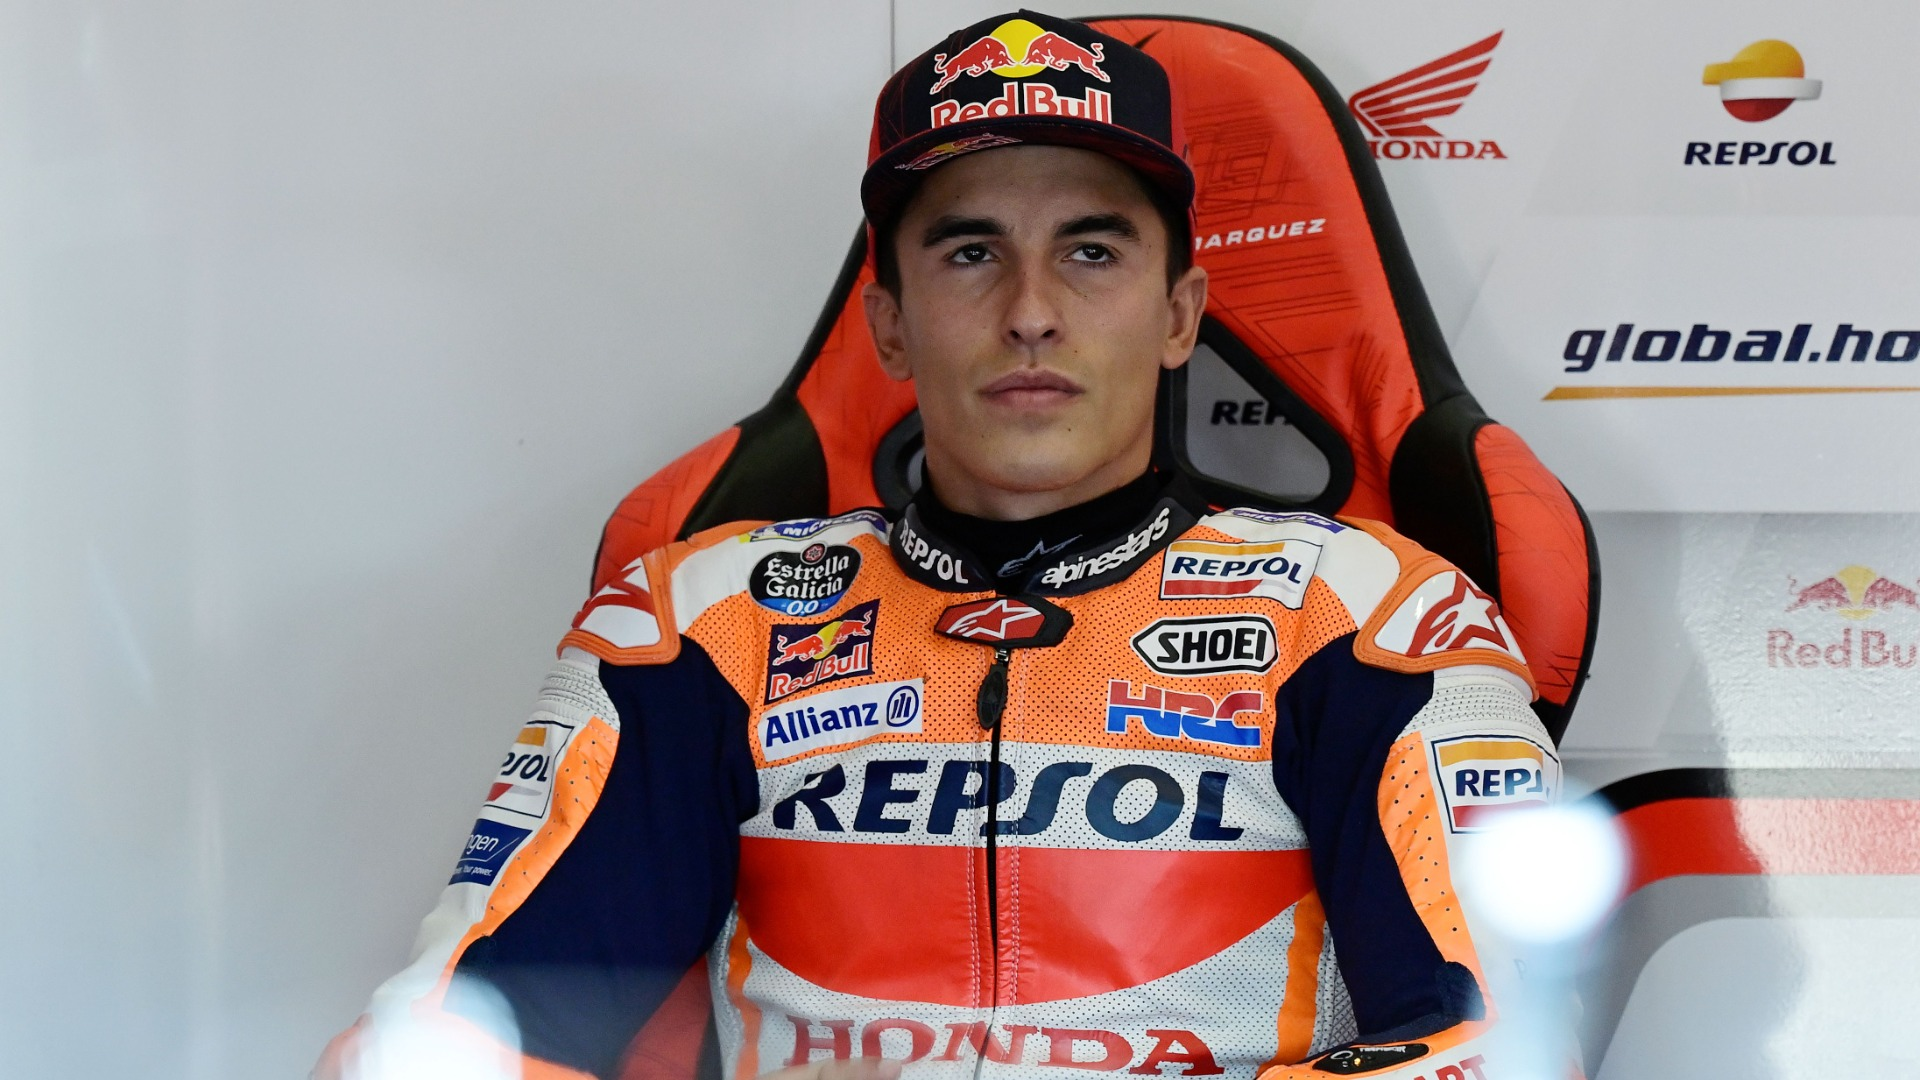 Marquez to step up recovery ahead of 2021 MotoGP season